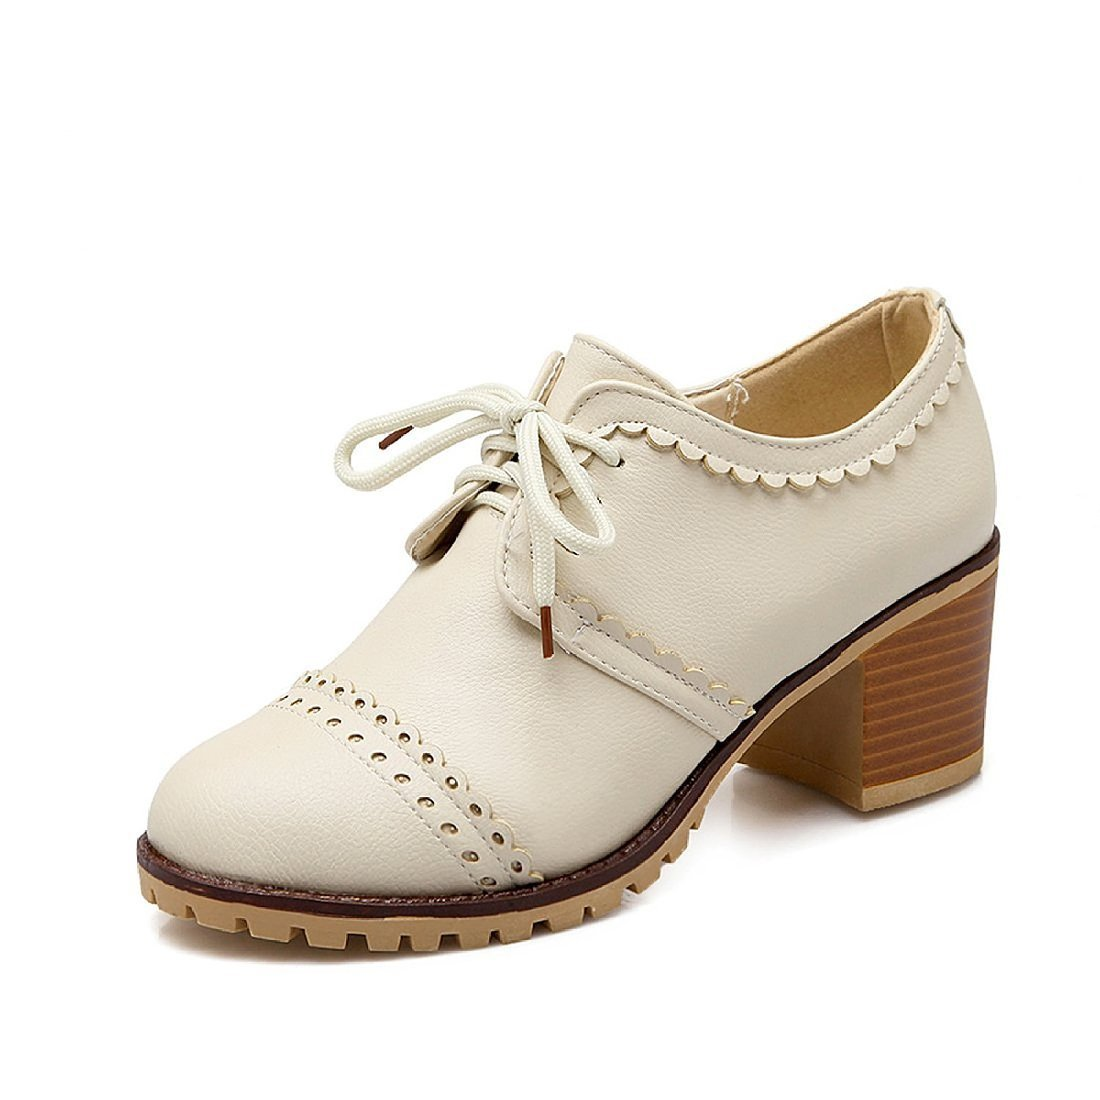 Susanny Classic Retro Pu Oxfords Brogue Shoes Women's Mid-Heel Wingtip Lace up Dress Beige Shoes 10 B (M) US